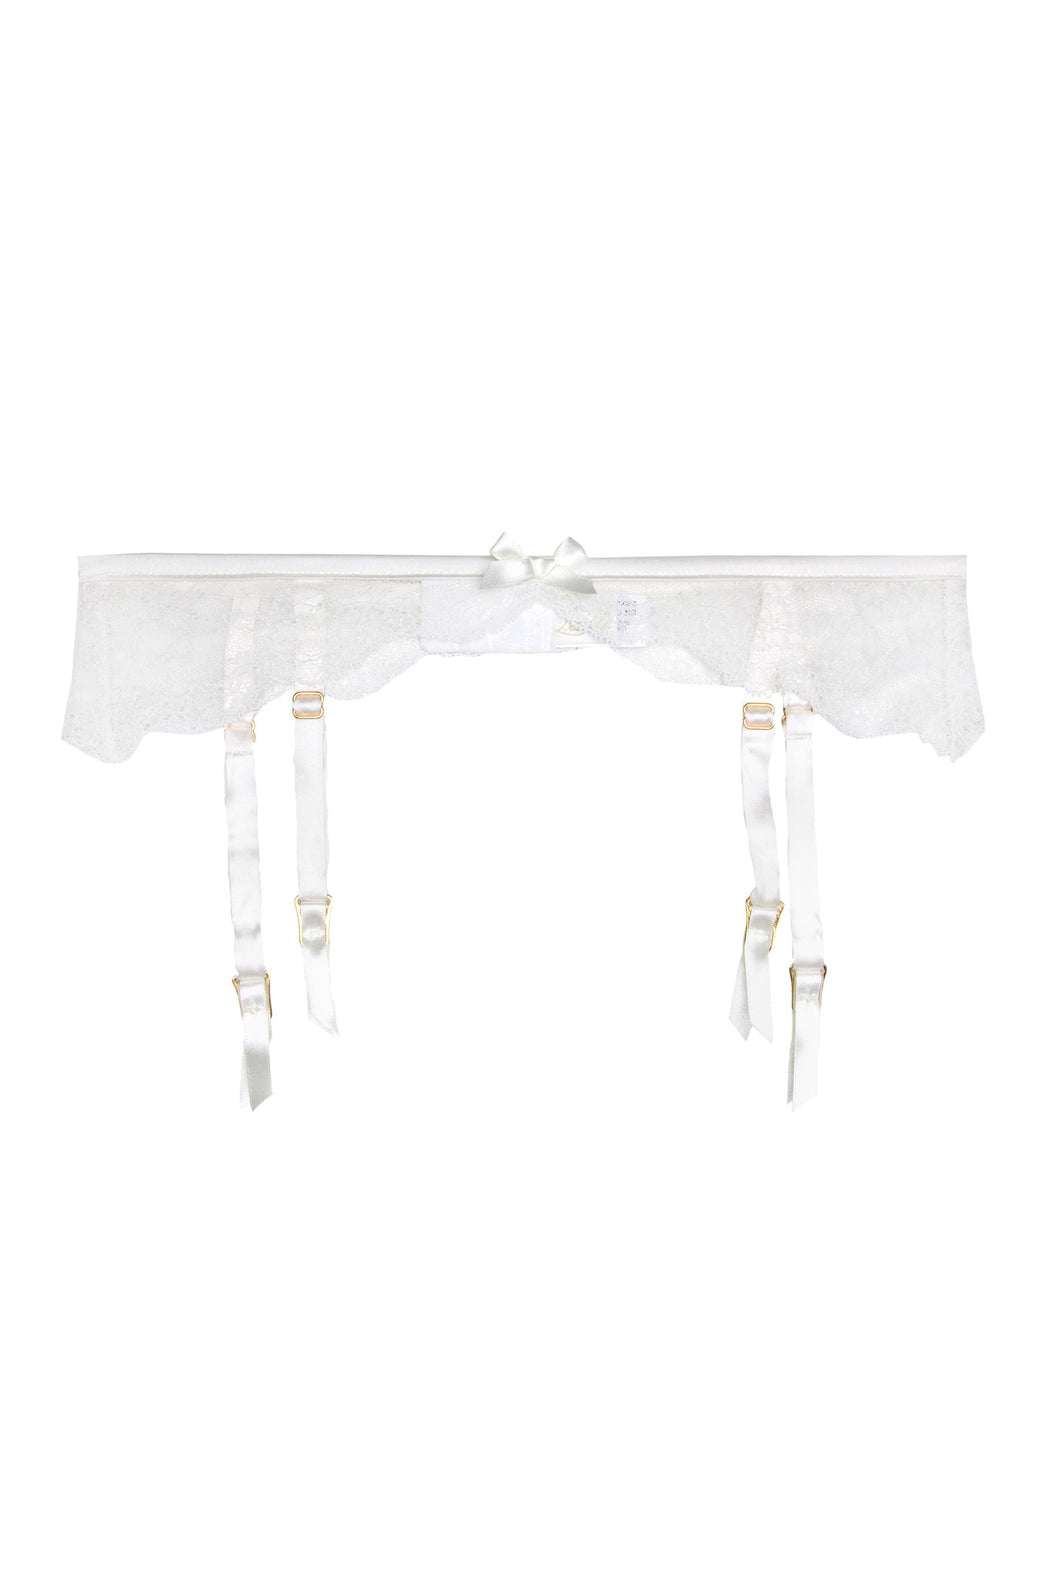 Ivory lace suspender belt by Lucile workingirls lingerie